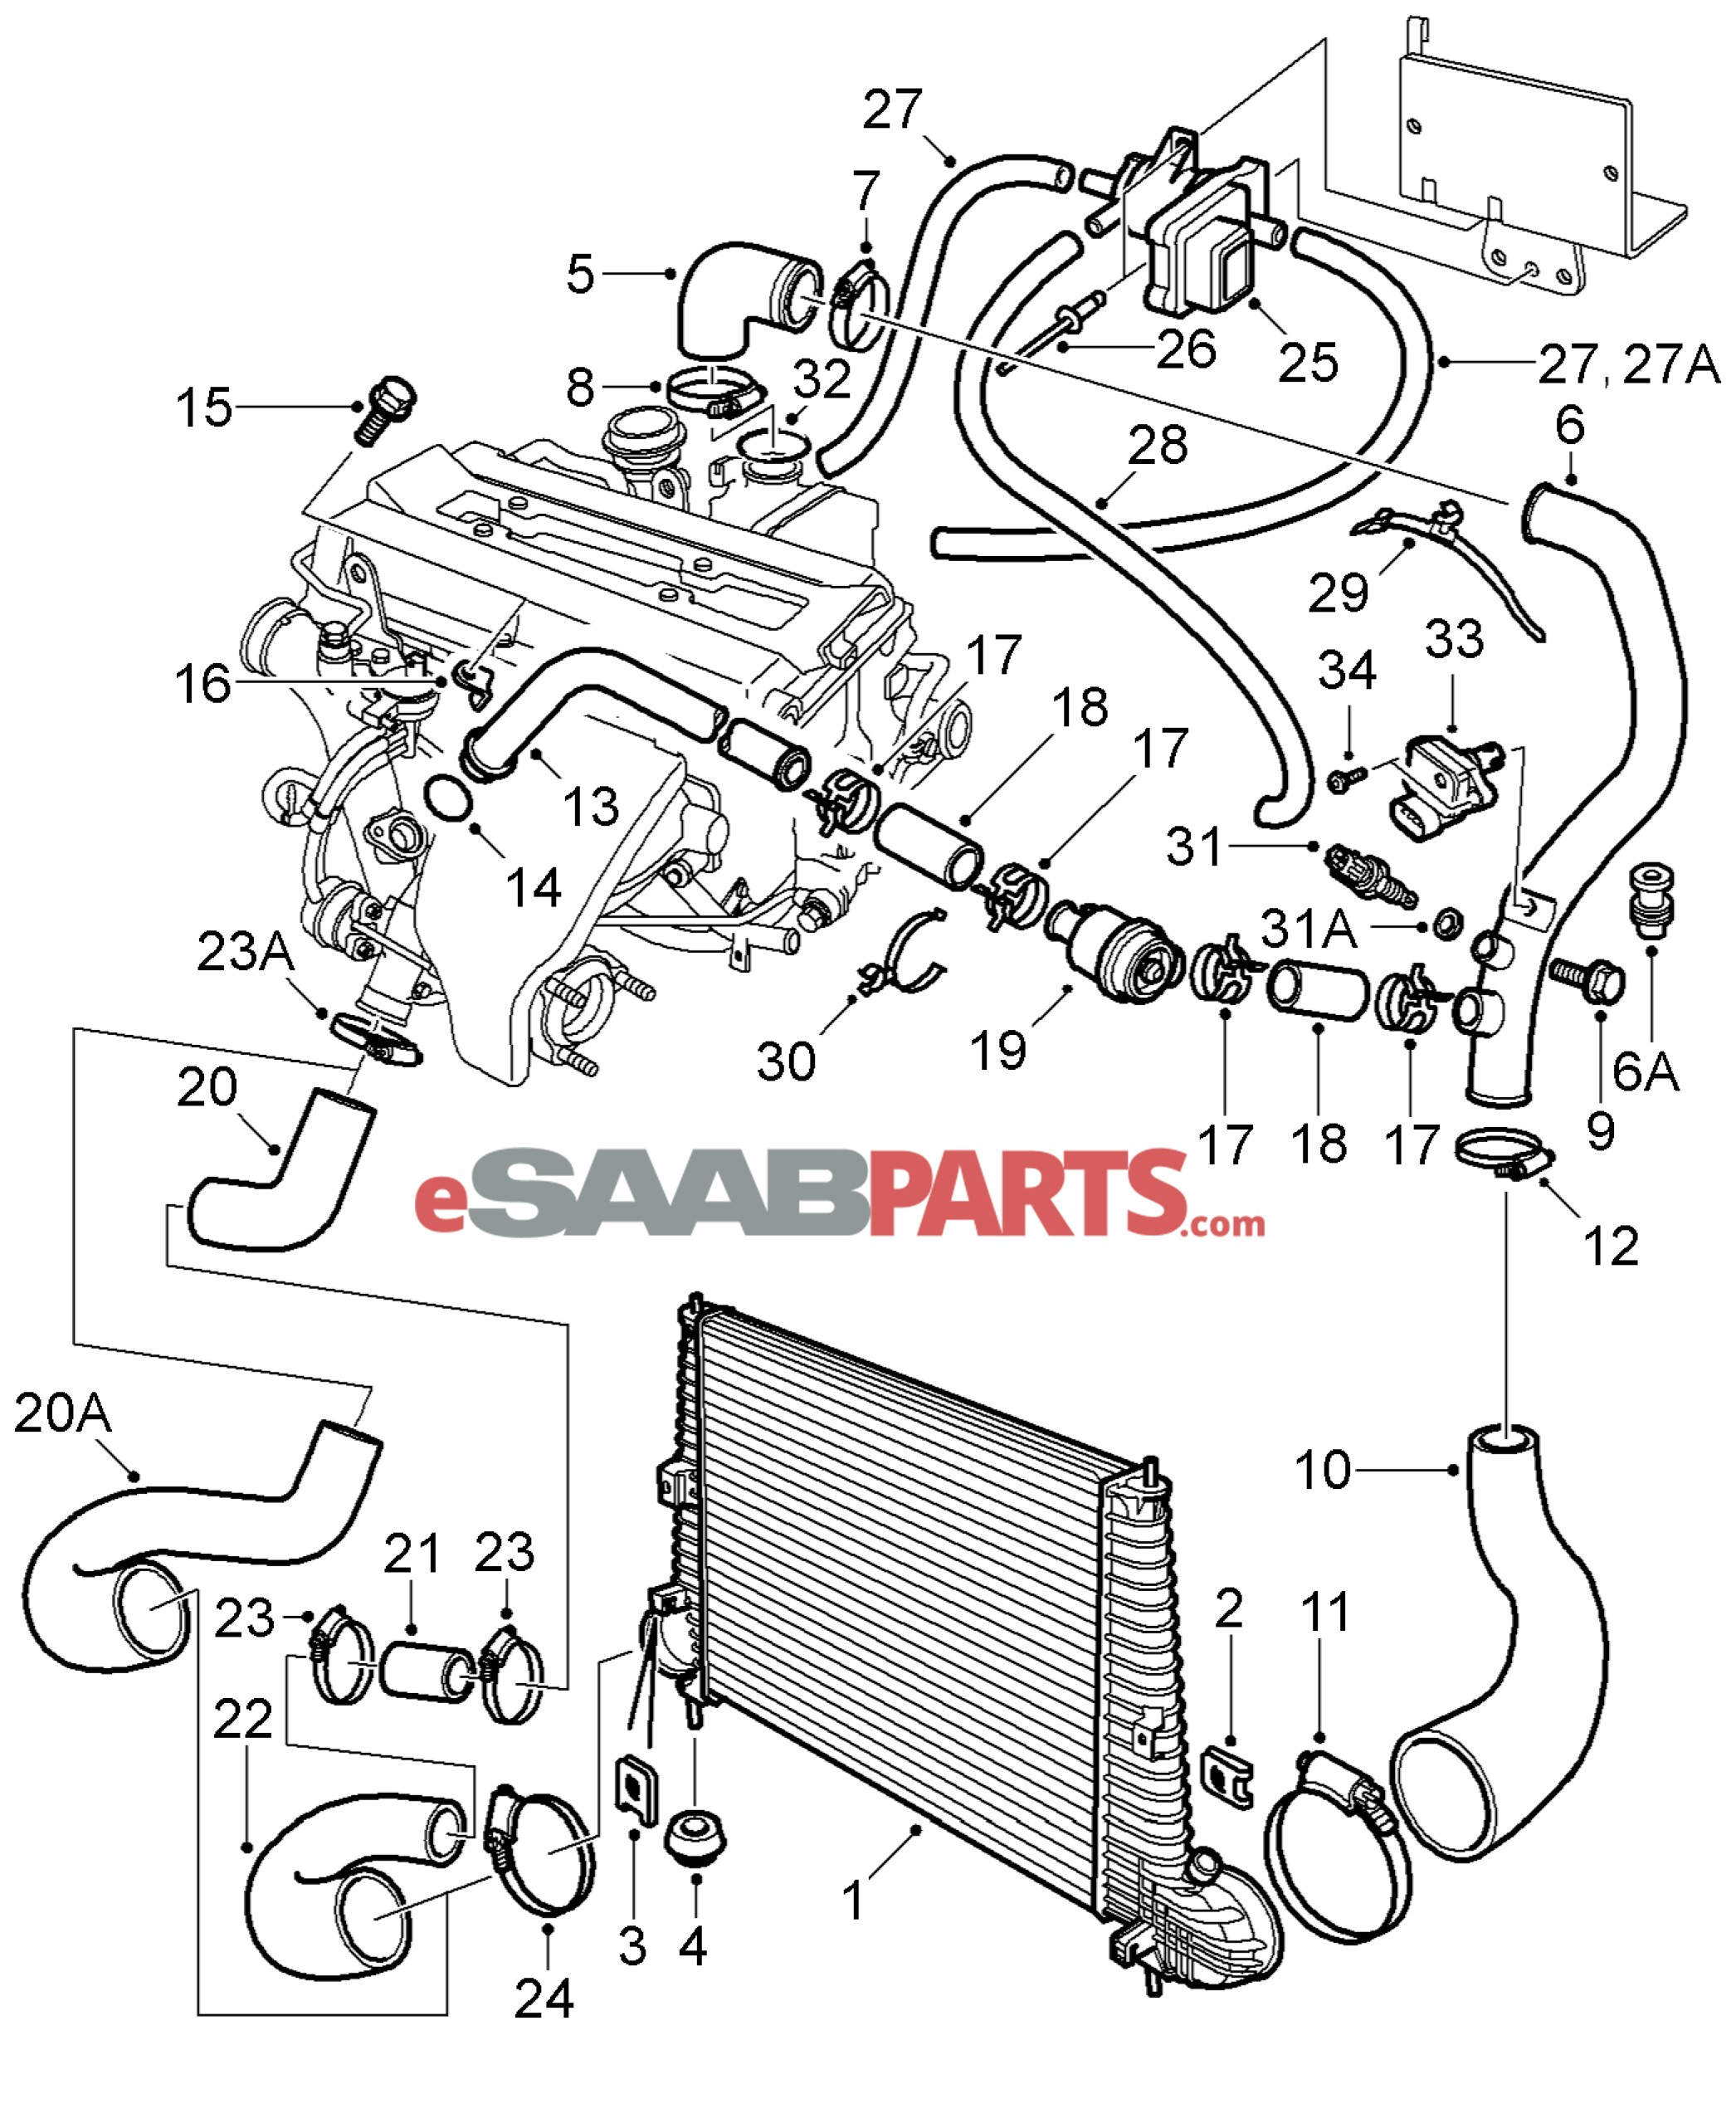 S10 Engine Diagram List Of Schematic Circuit Fuse Box In A 1998 Chevy 2 2l 8 V6 Opinions About Wiring U2022 Rh Voterid Co